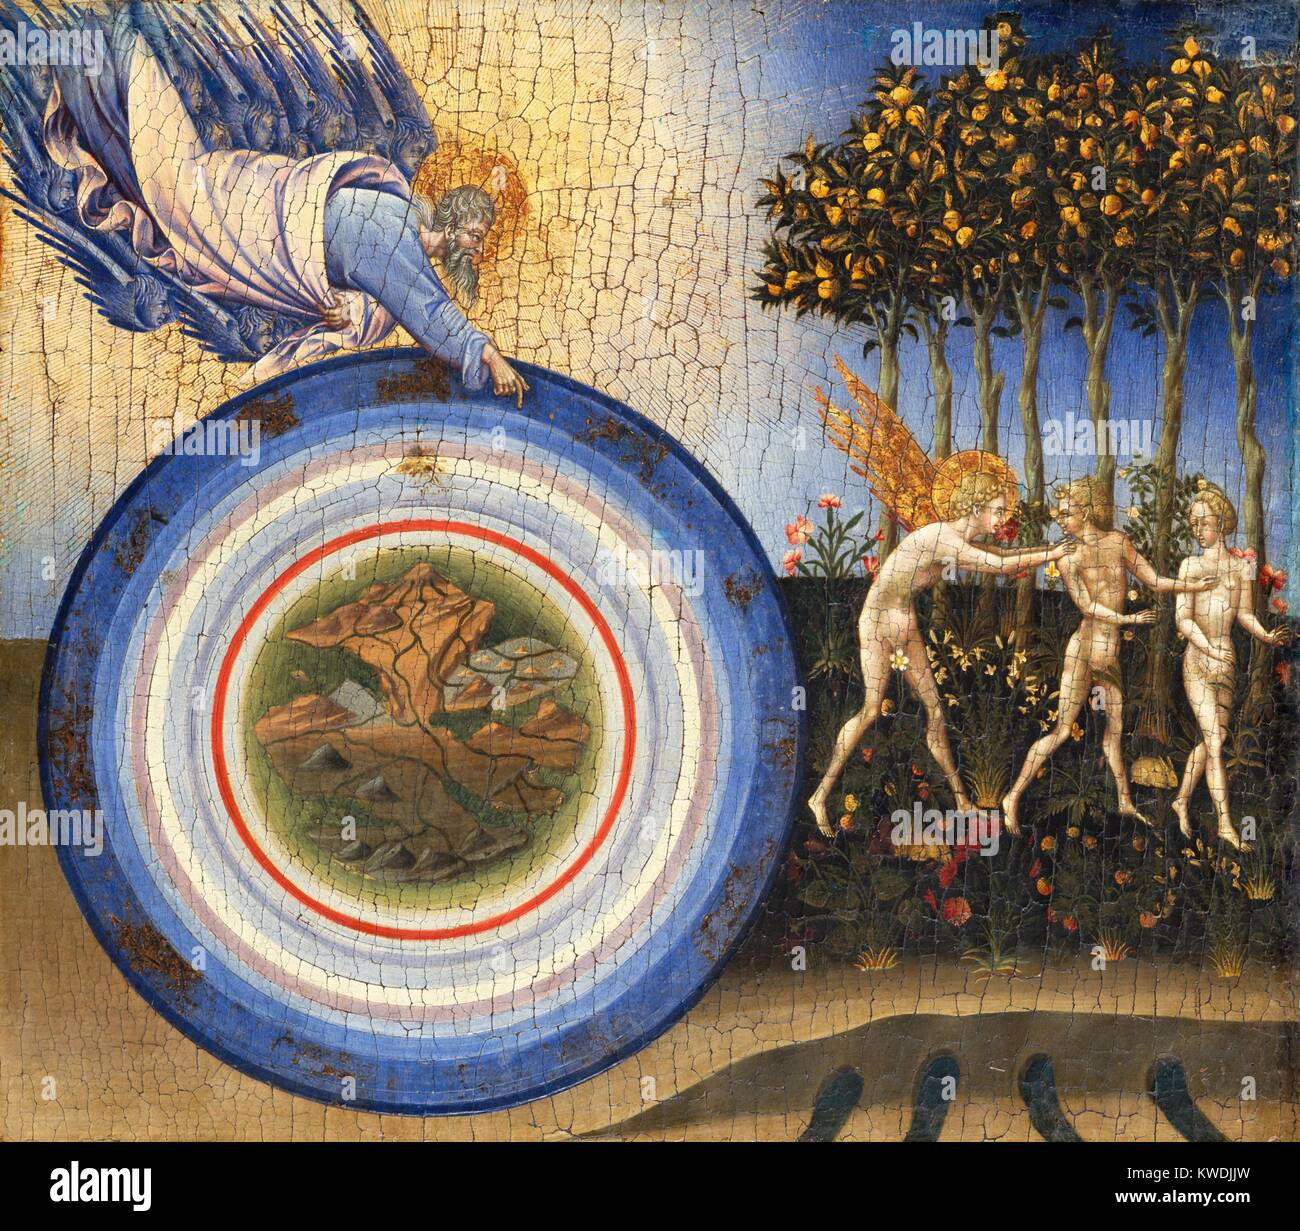 CREATION OF THE WORLD AND EXPULSION FROM PARADISE, by Giovanni di Paolo, 1445, Renaissance painting. The universe - Stock Image